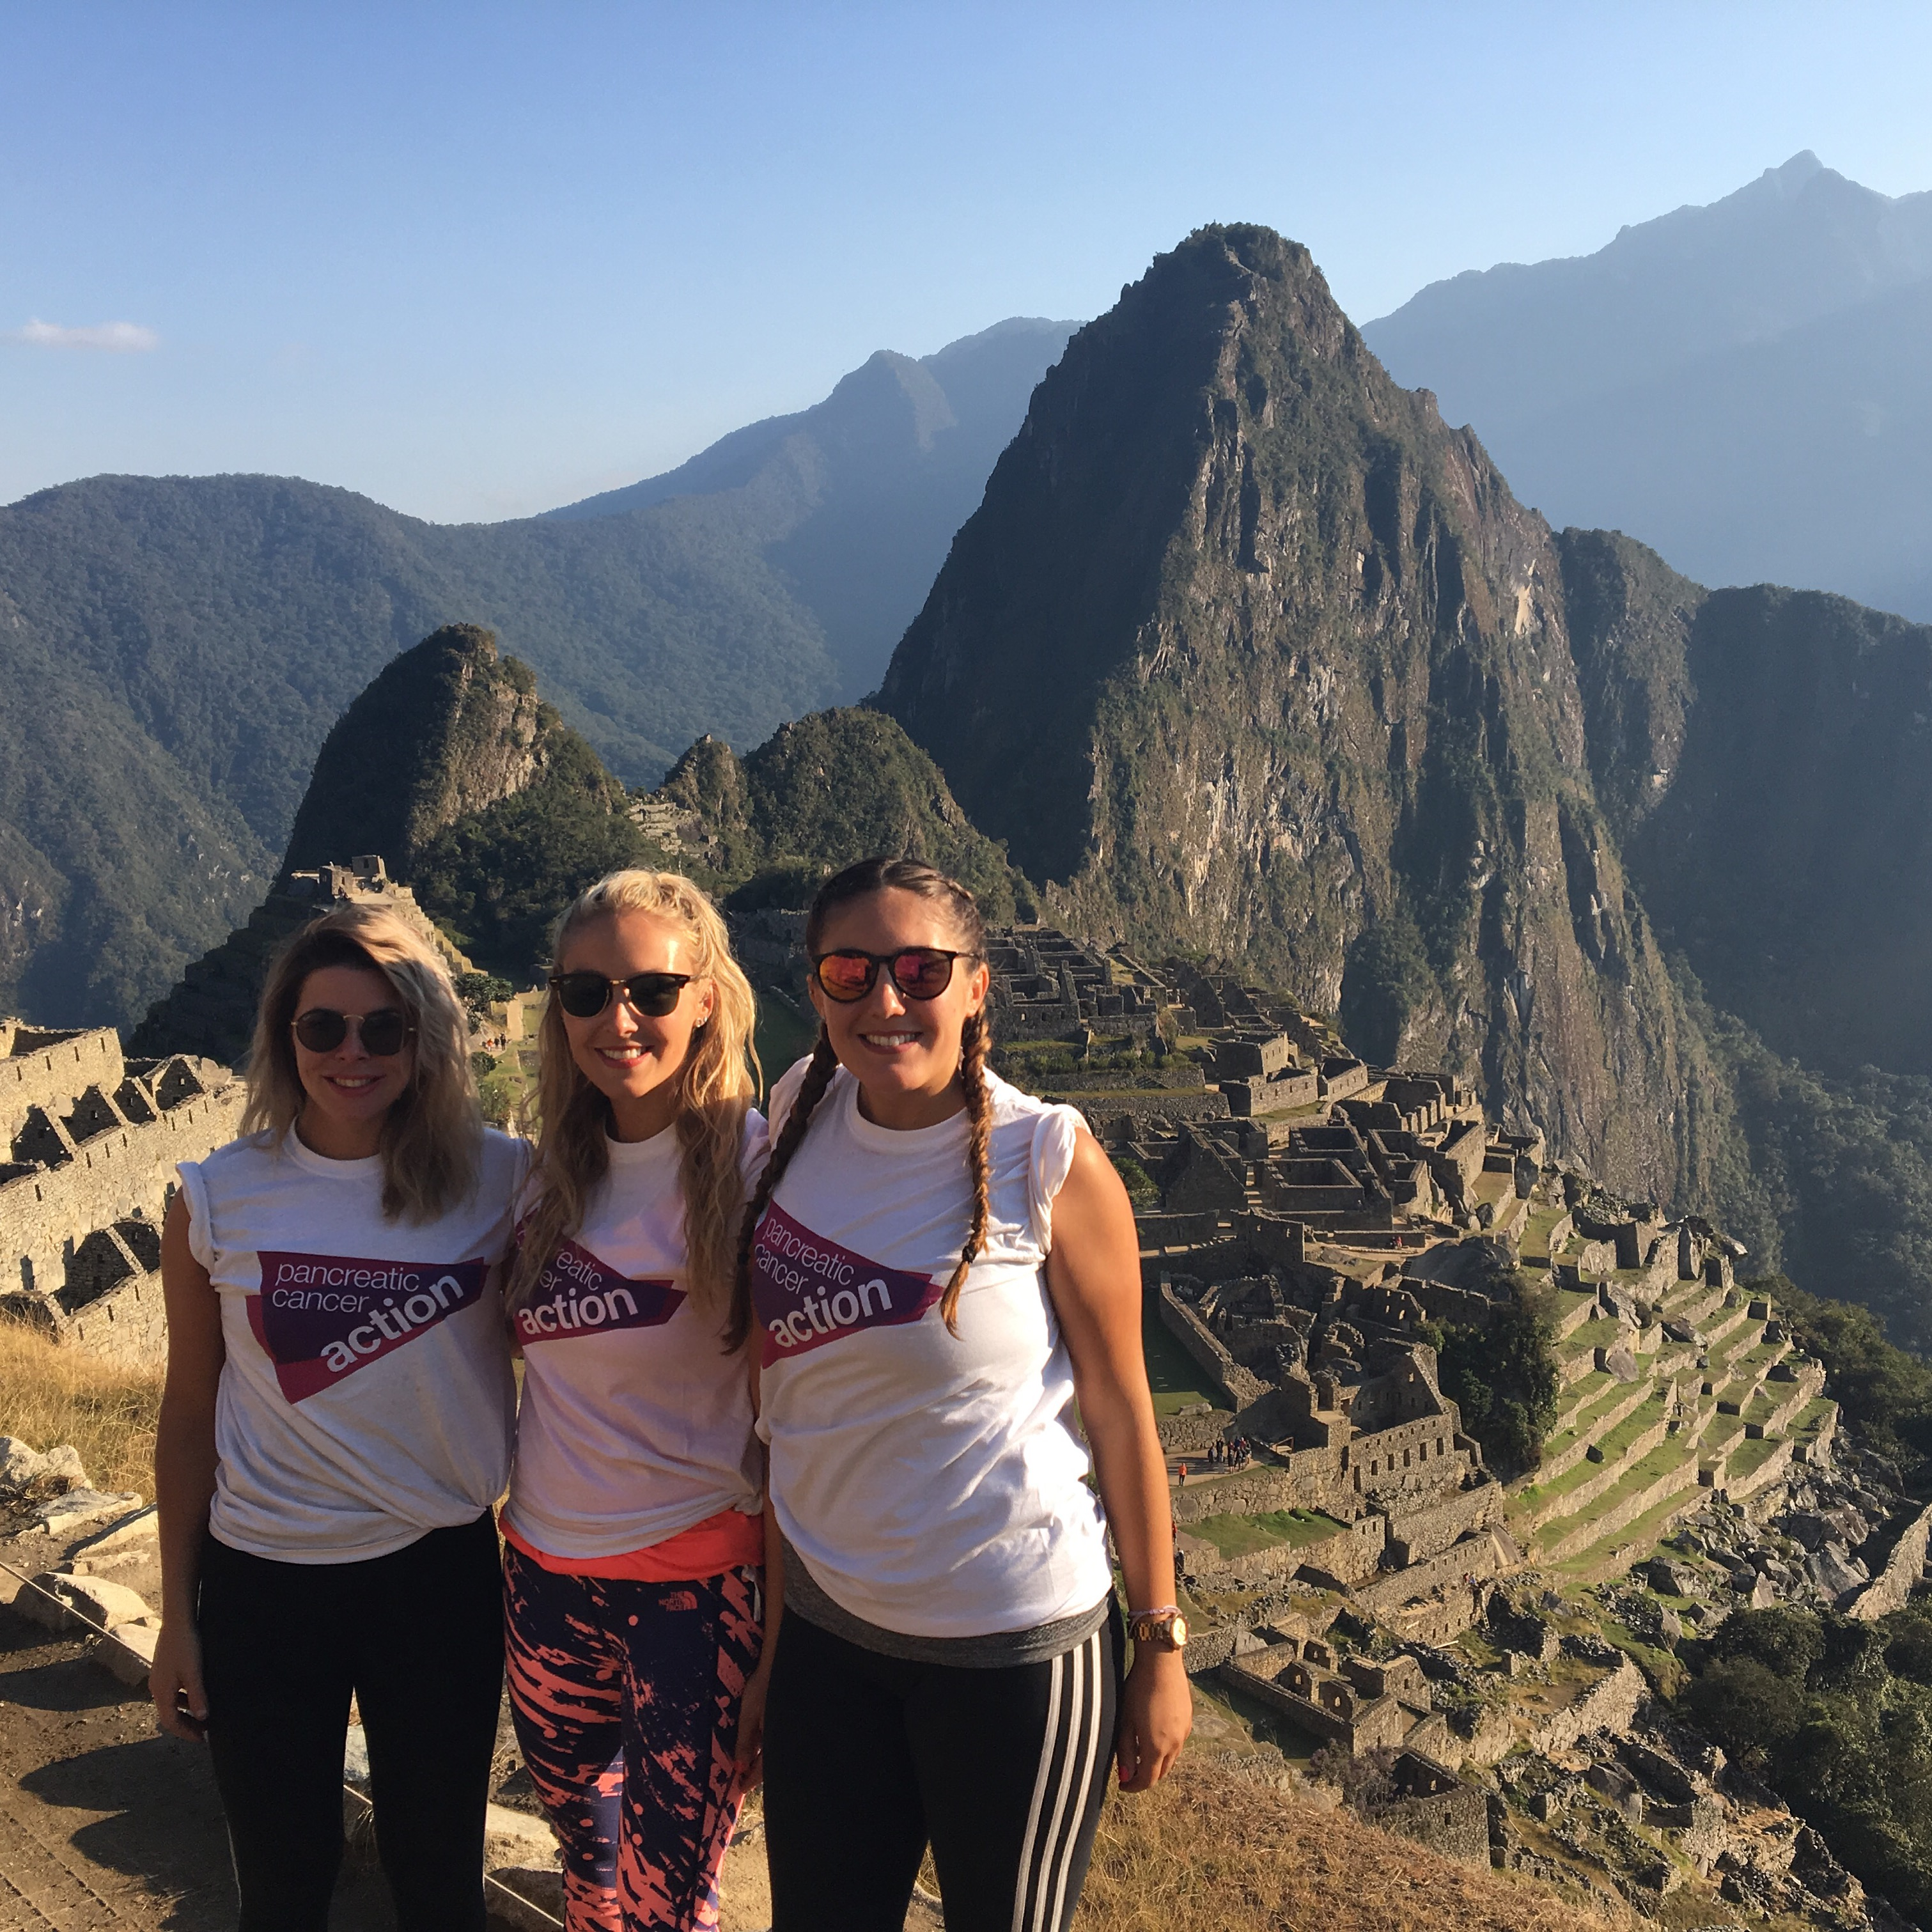 Inca Trek for Pancreatic Cancer Action